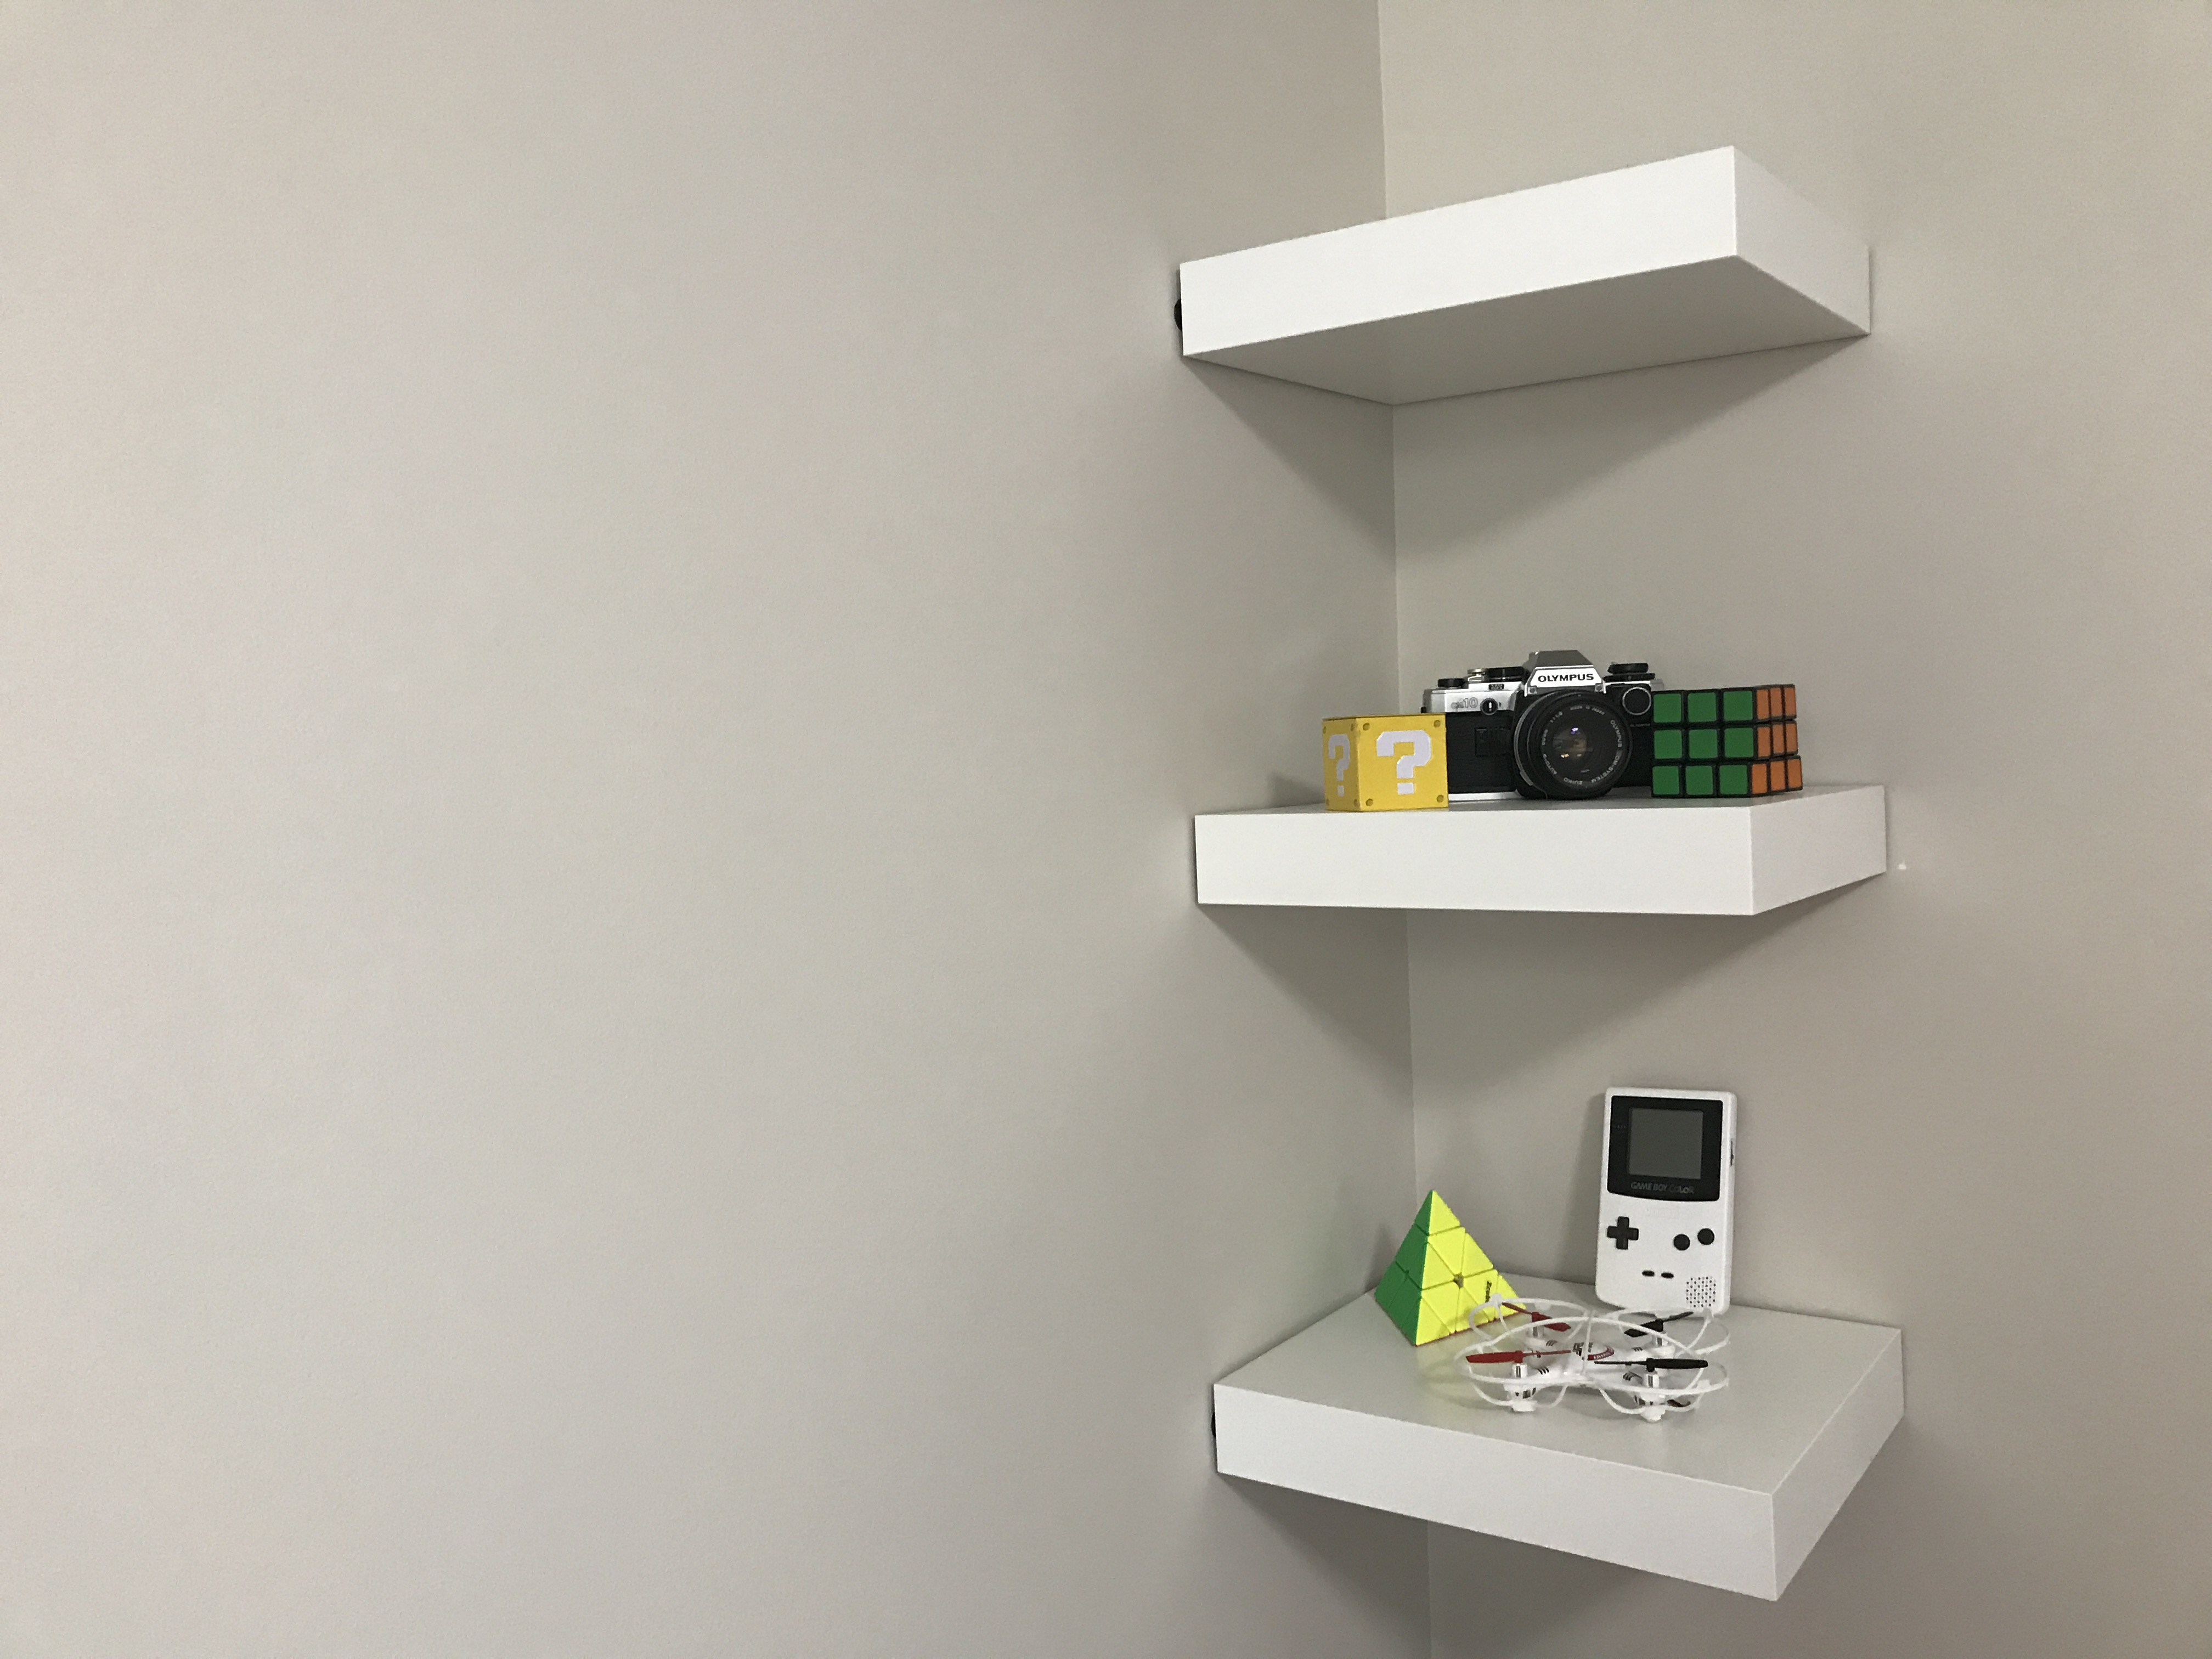 Picture of IKEA Lack Shelf Without Drilling or Nails